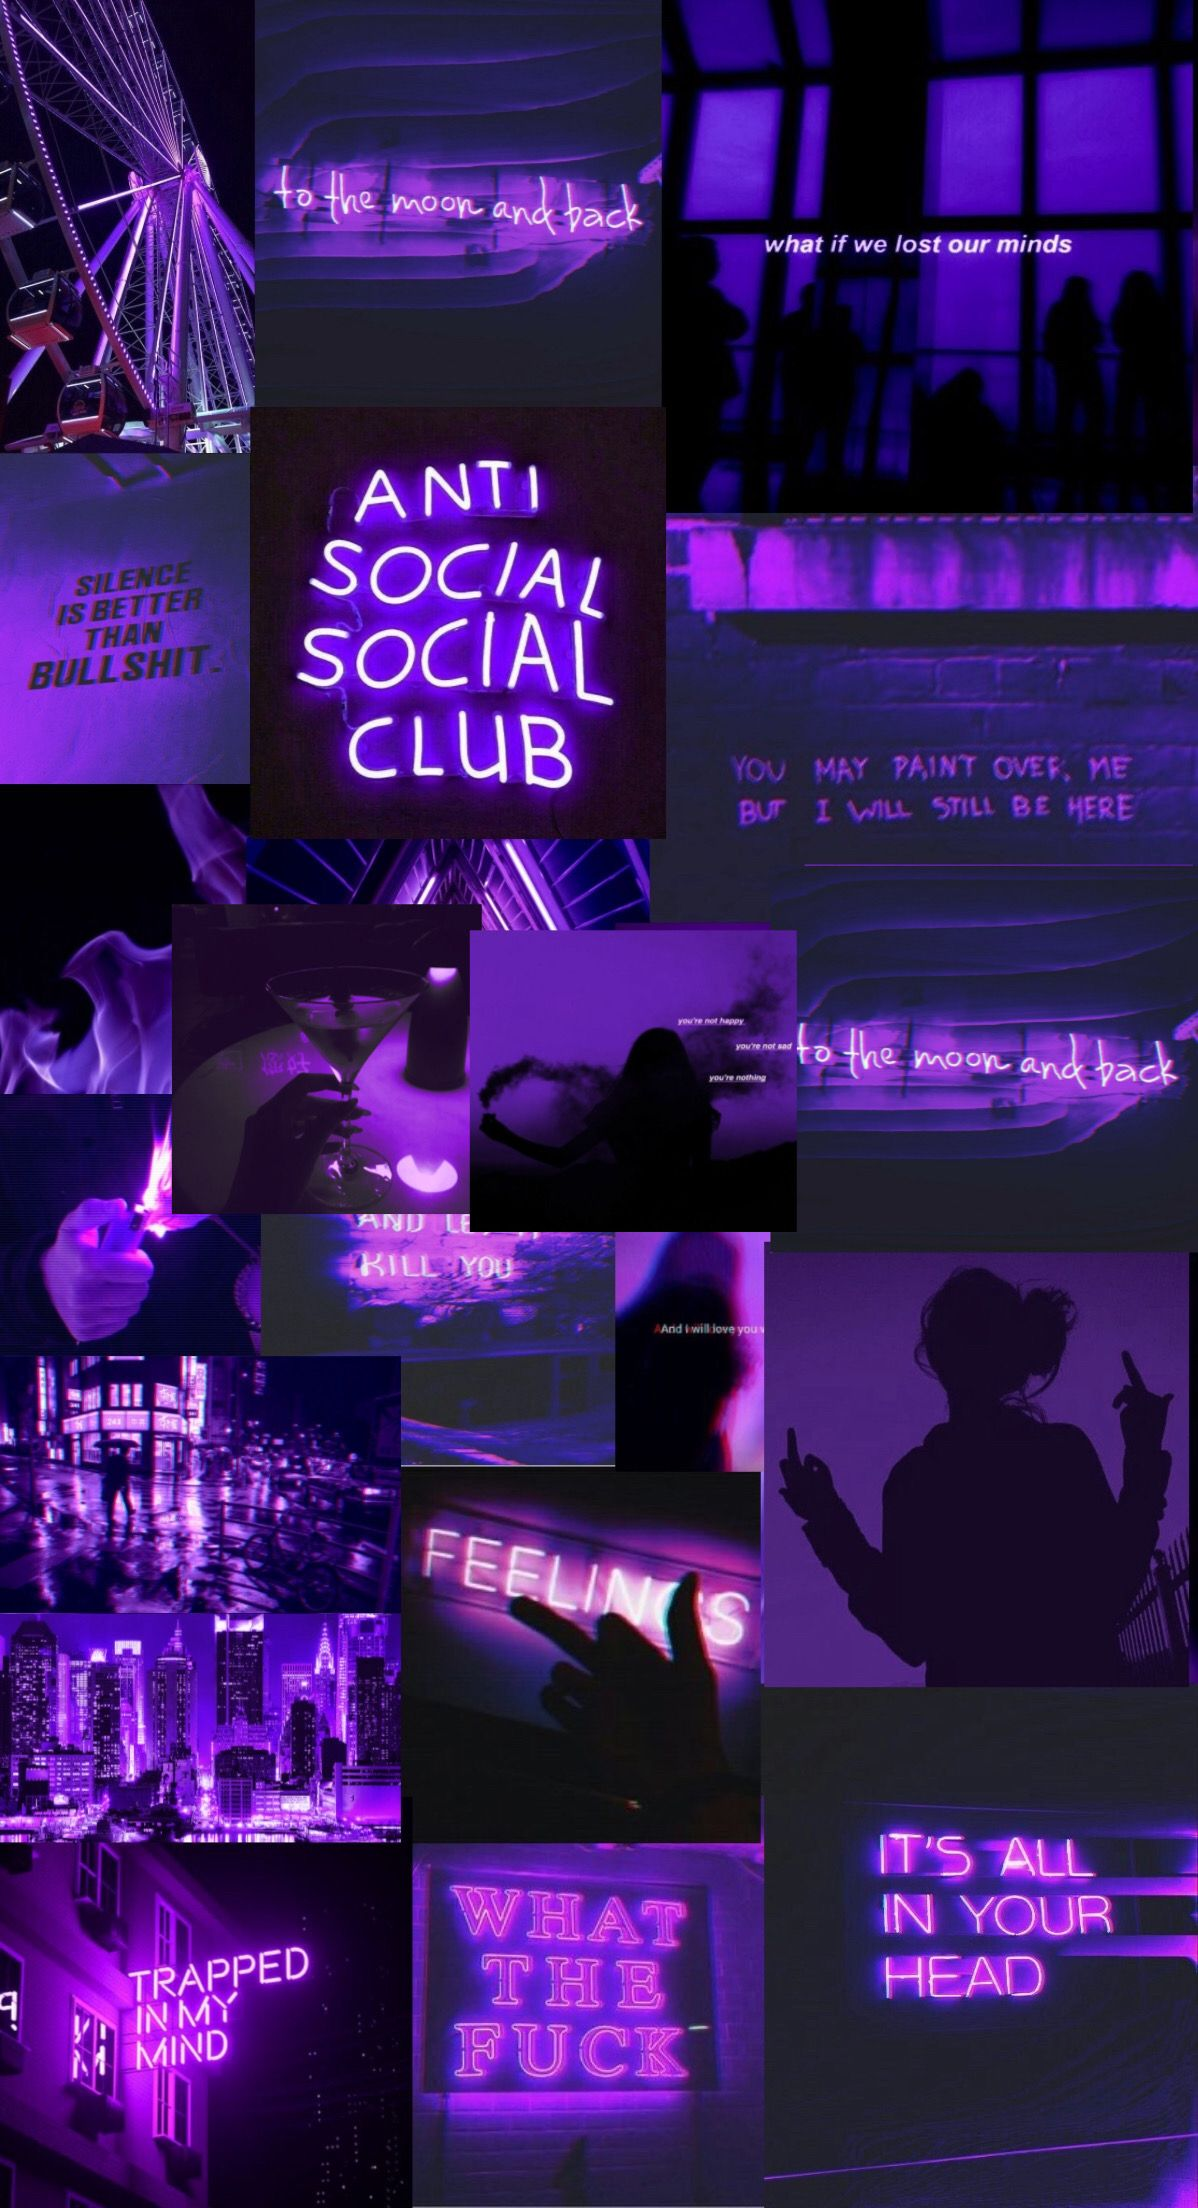 Purple Wallpaper Aesthetic In 2020 Black Aesthetic Wallpaper Dark Purple Aesthetic Purple Wallpaper